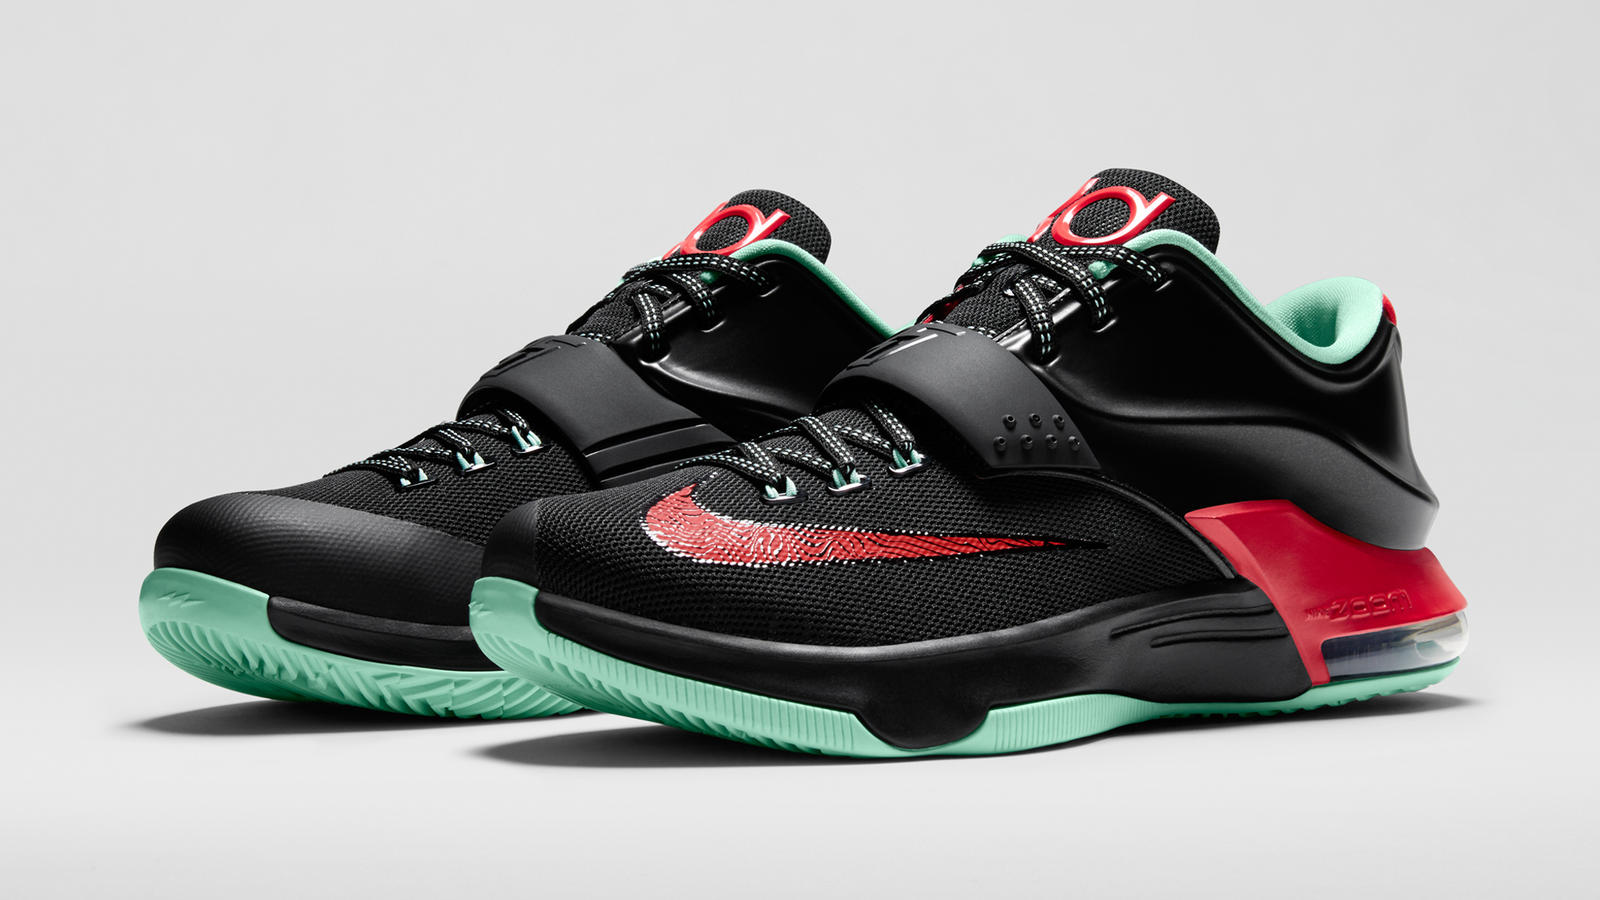 the latest ea311 18949 kd7goodapples653996 0633qtr pair fb. kd7goodapples653996 063outsole fb.  kd7goodapples653996 063topdown fb. kd7goodapples653996 063inside fb